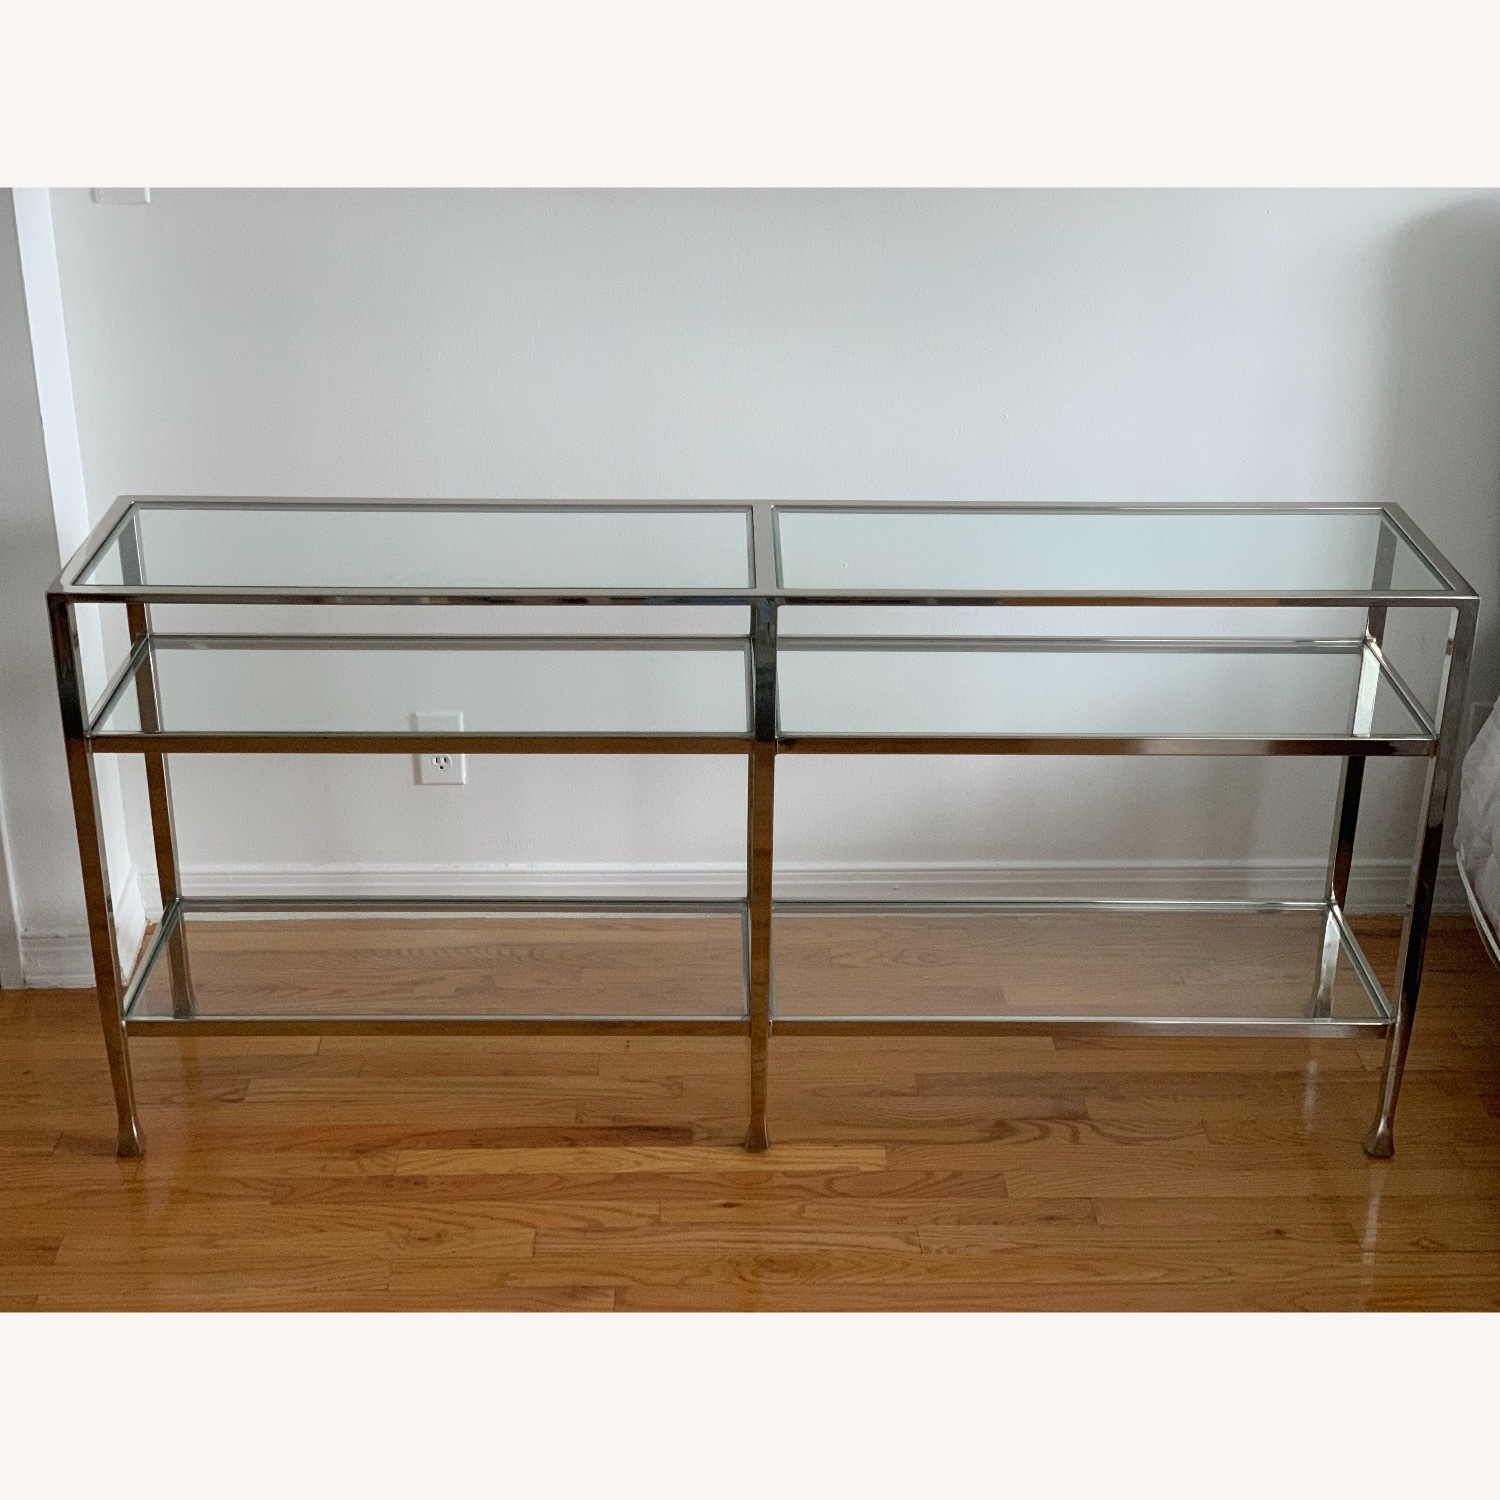 Pottery Barn Nickel Console Table - image-1